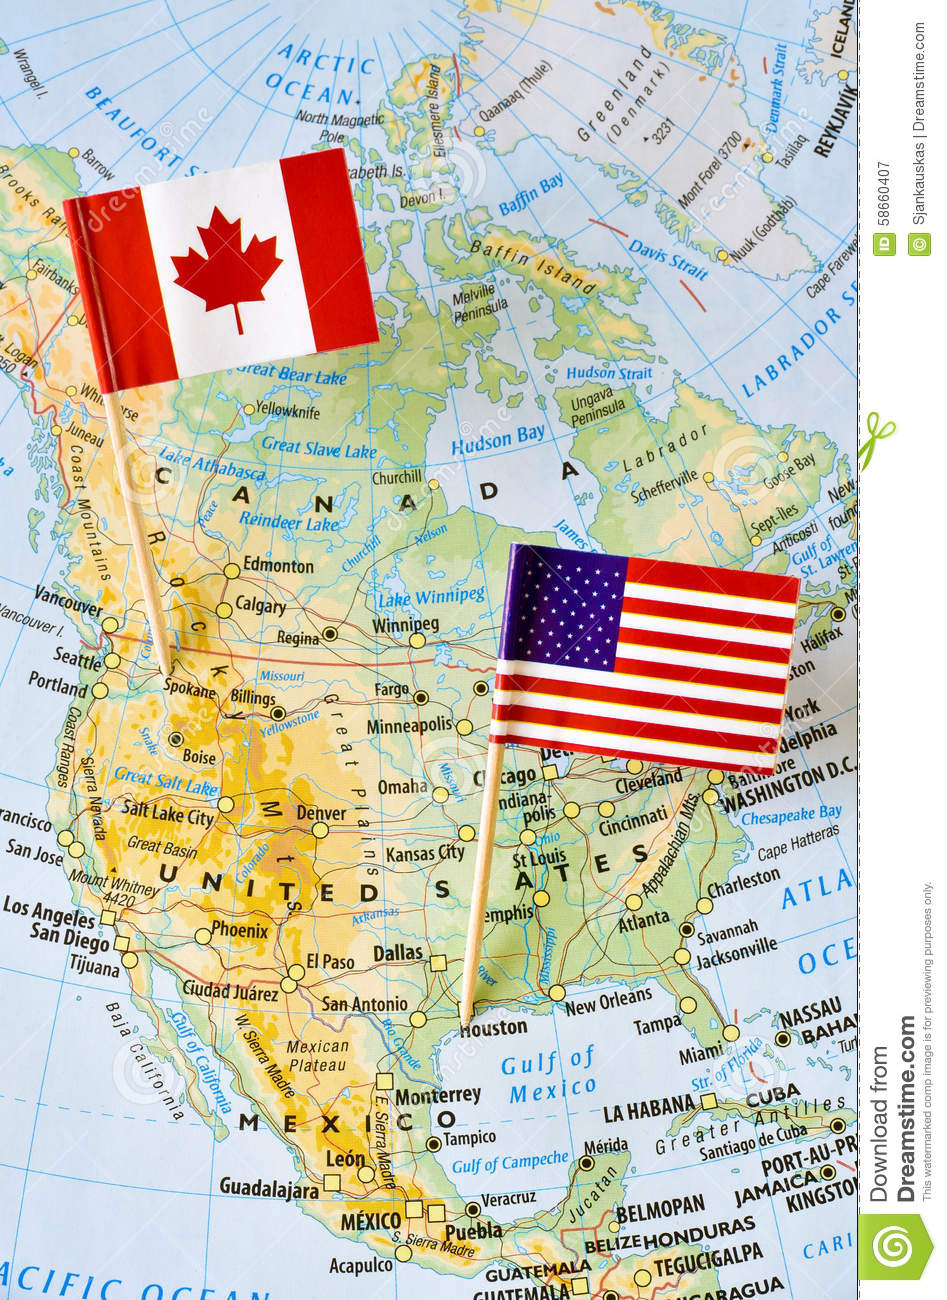 Map Of Canada And Surrounding Countries.Canada And Usa Flag Pin On Map Stock Image Image Of Grid